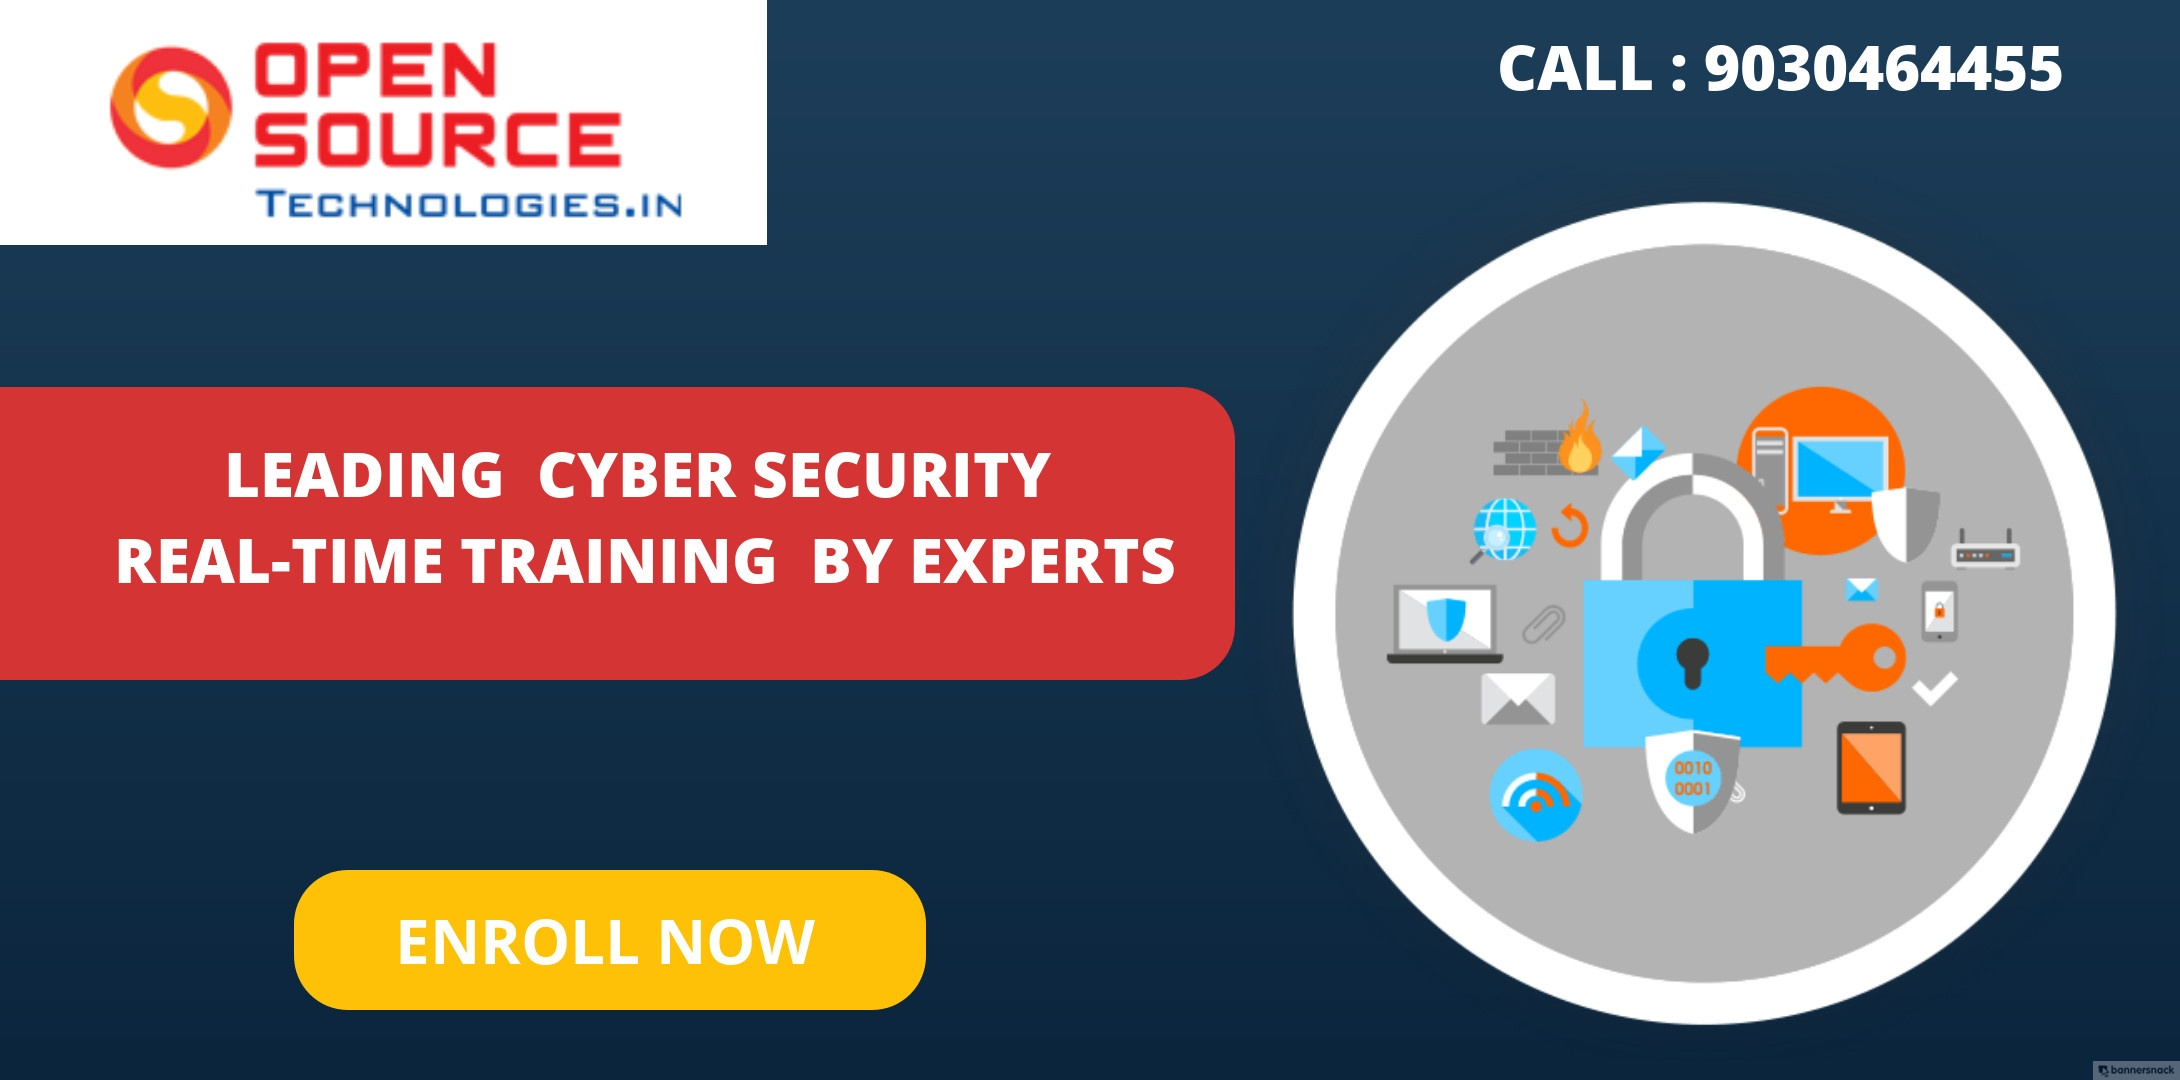 Which is the best cyber security institute in Hyderabad? - Quora